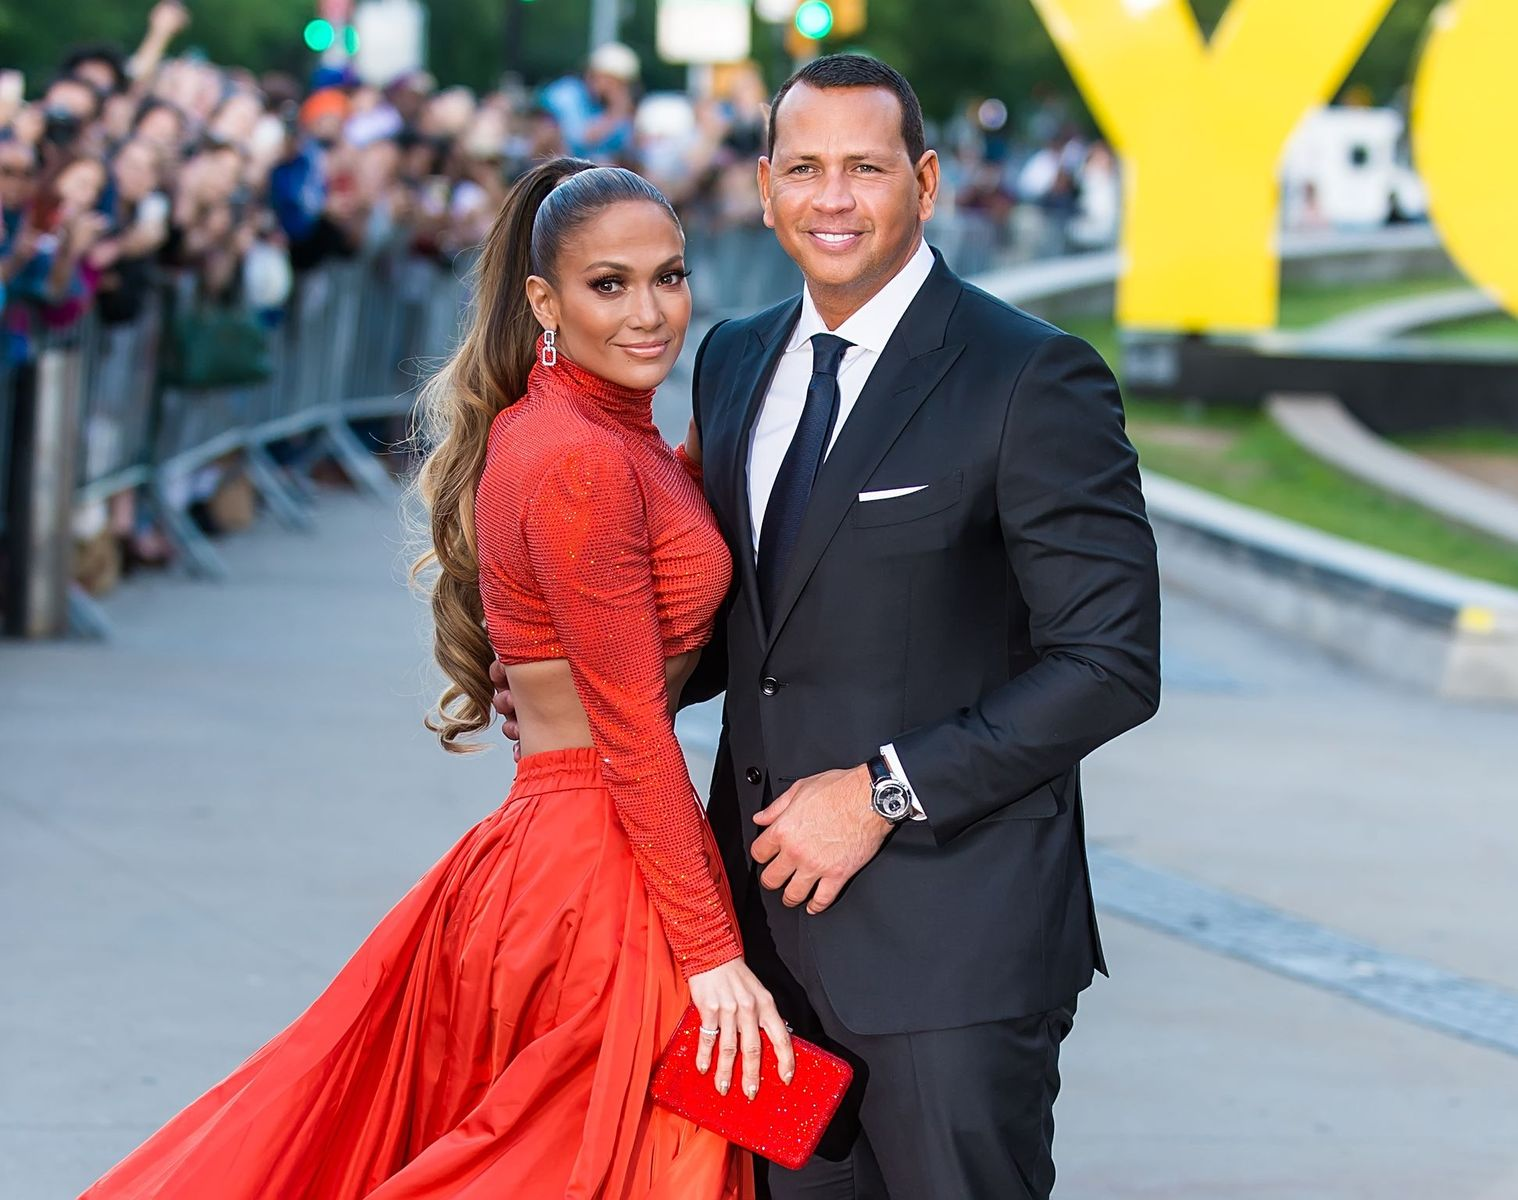 Jennifer Lopez and Alex Rodriguez at the 2019 CFDA Fashion Awards on June 3, 2019 in New York City | Photo: Getty Images